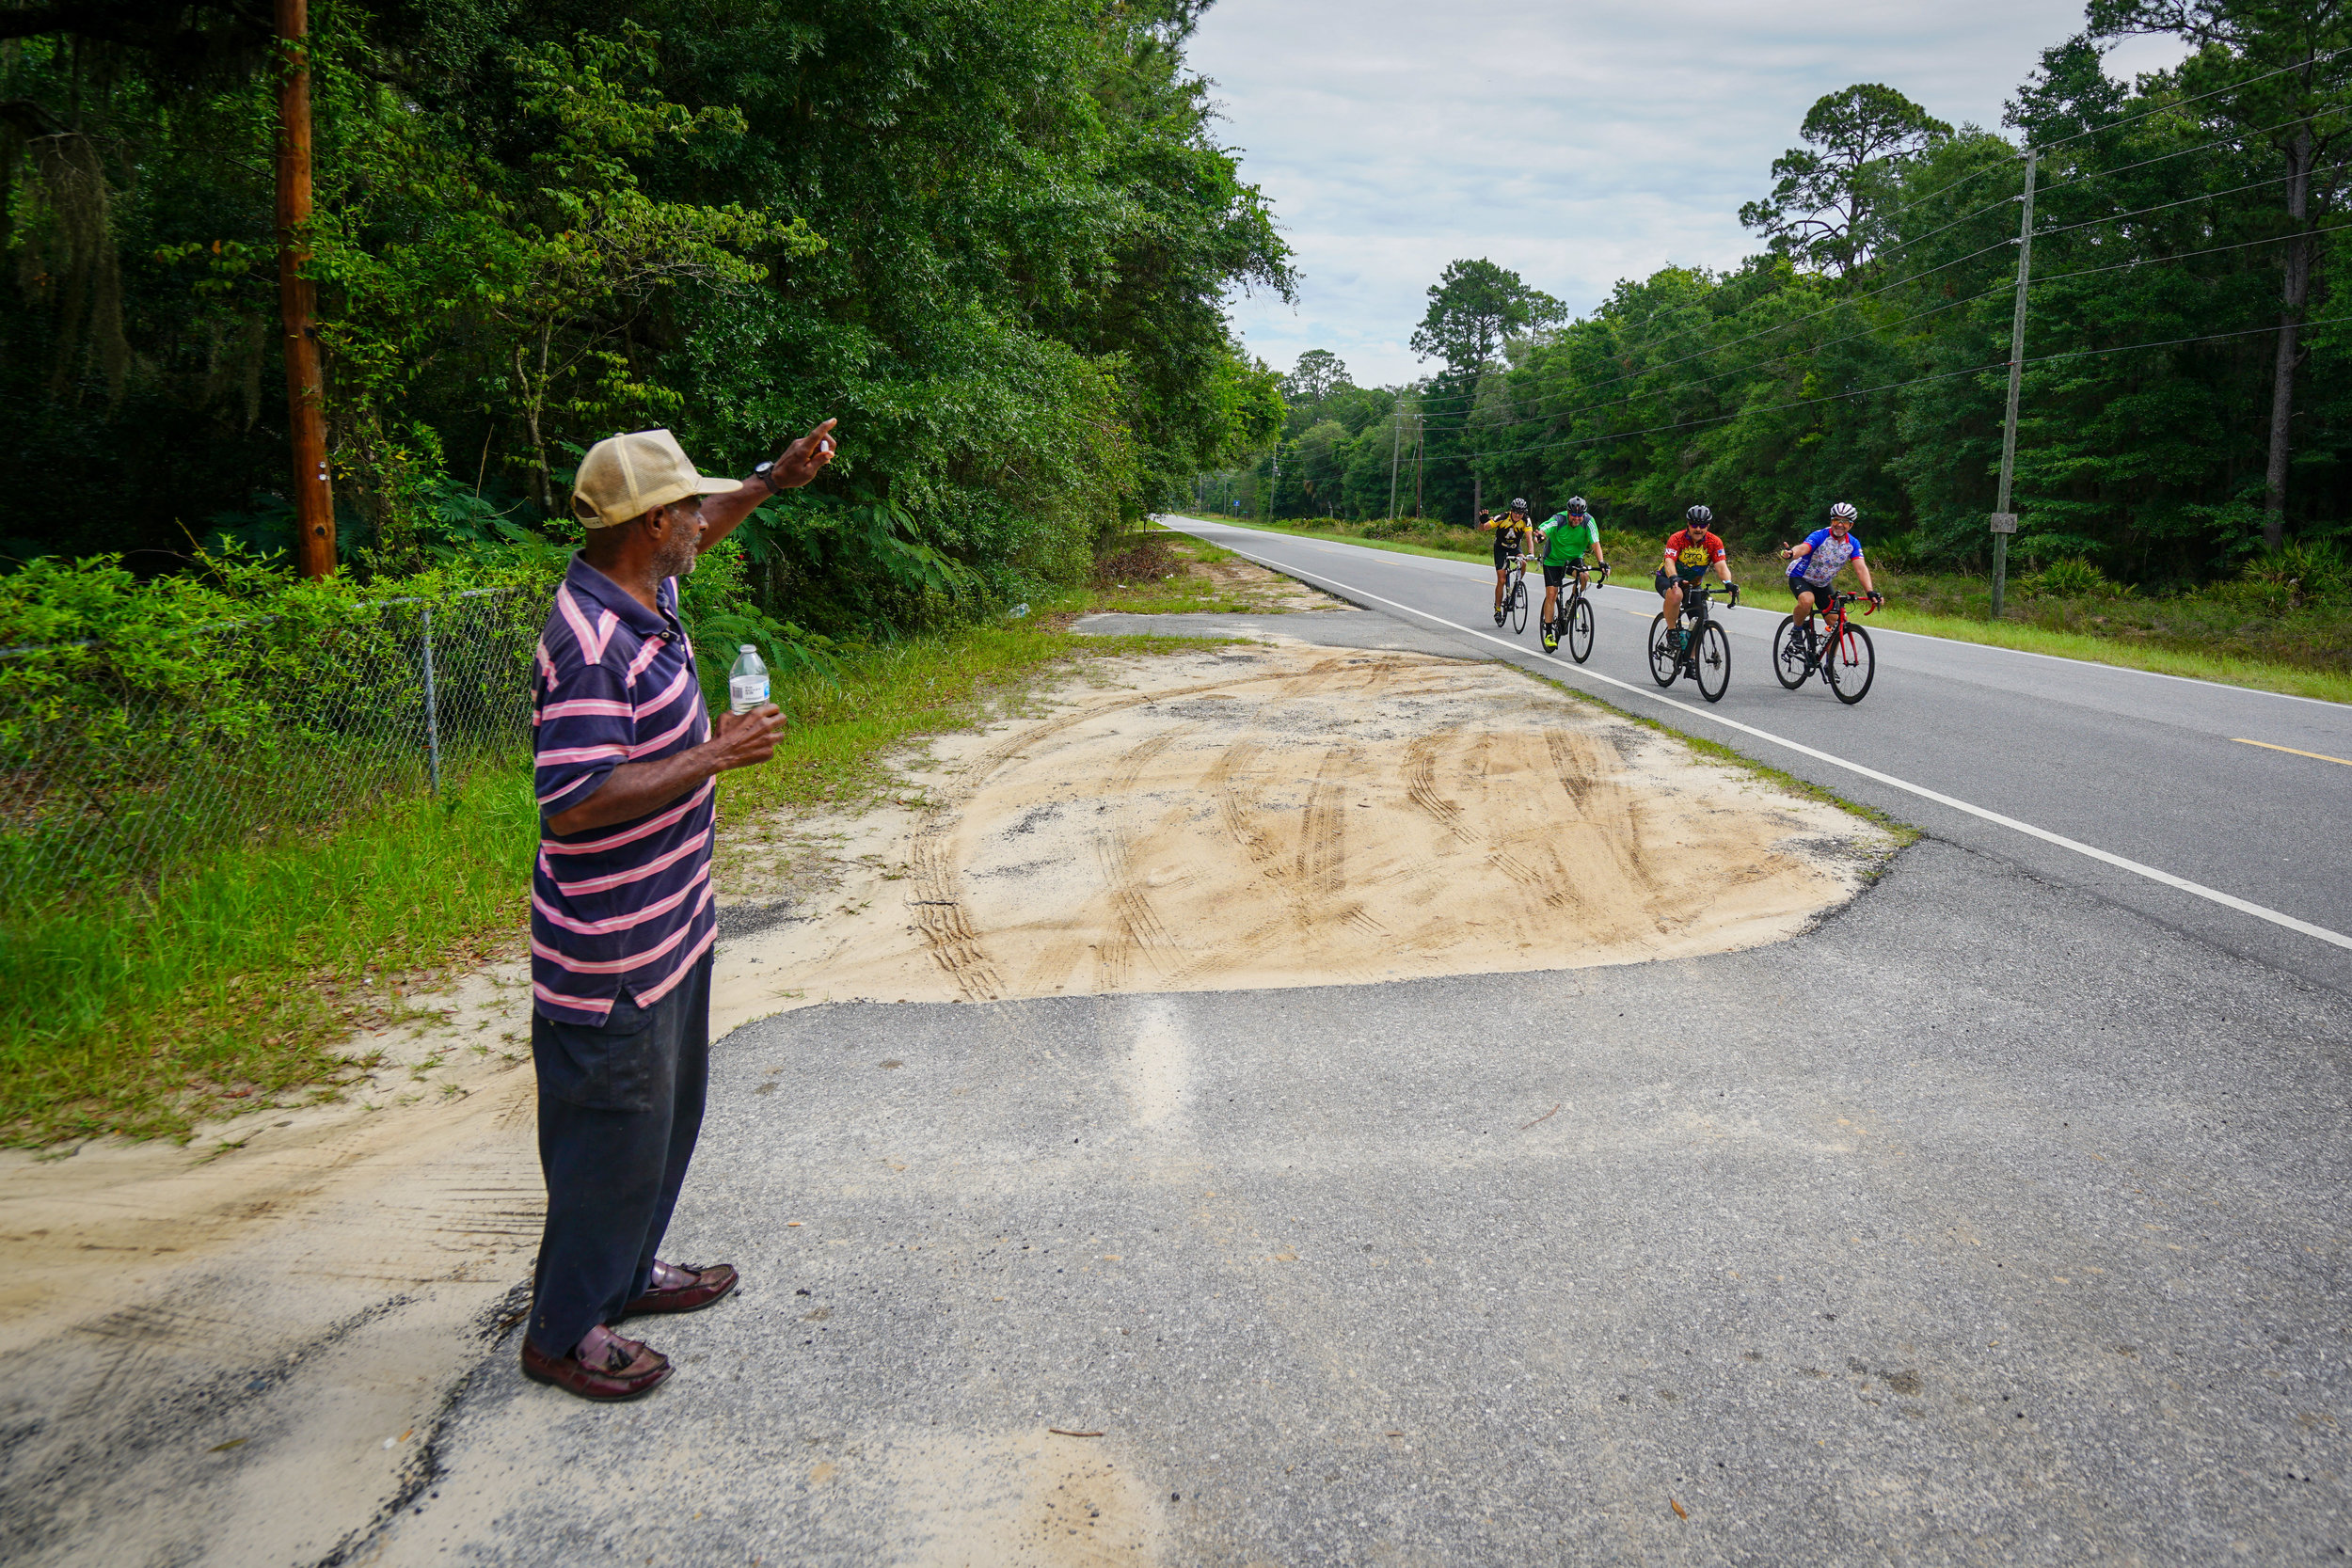 Cooper waves at cyclists as they pass his house on USBR 1 in McIntosh, GA .June 2019.  Photo: Russell Oliver